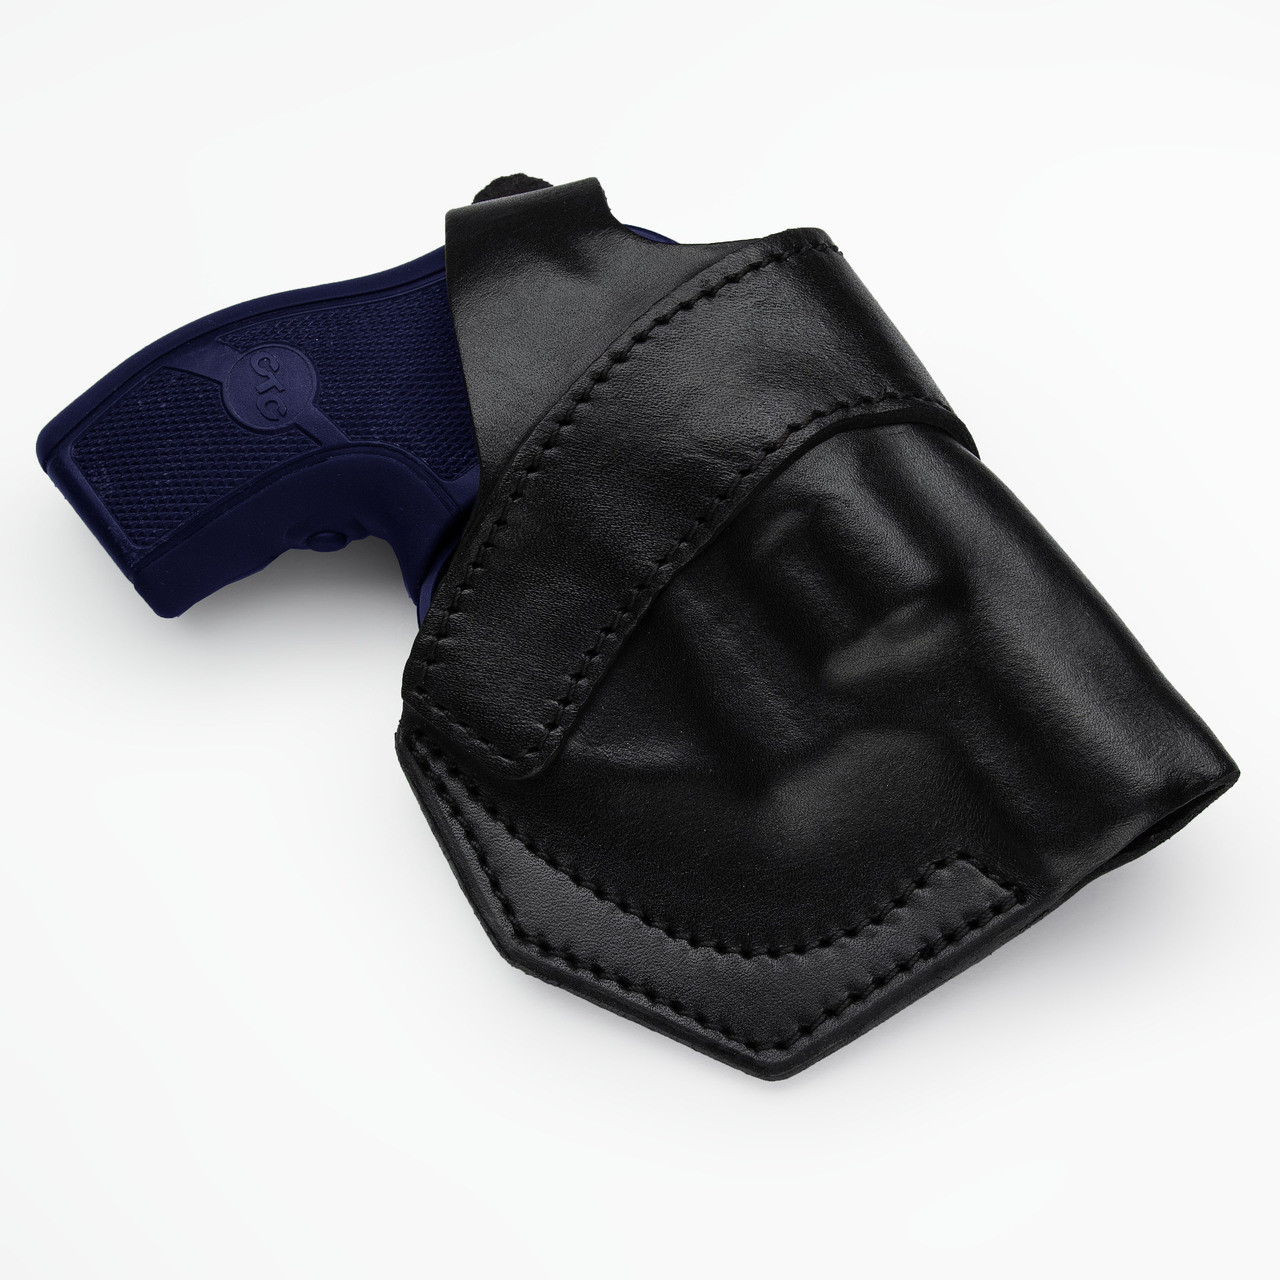 Talon Ruger LCR Outside the Waistband Holster